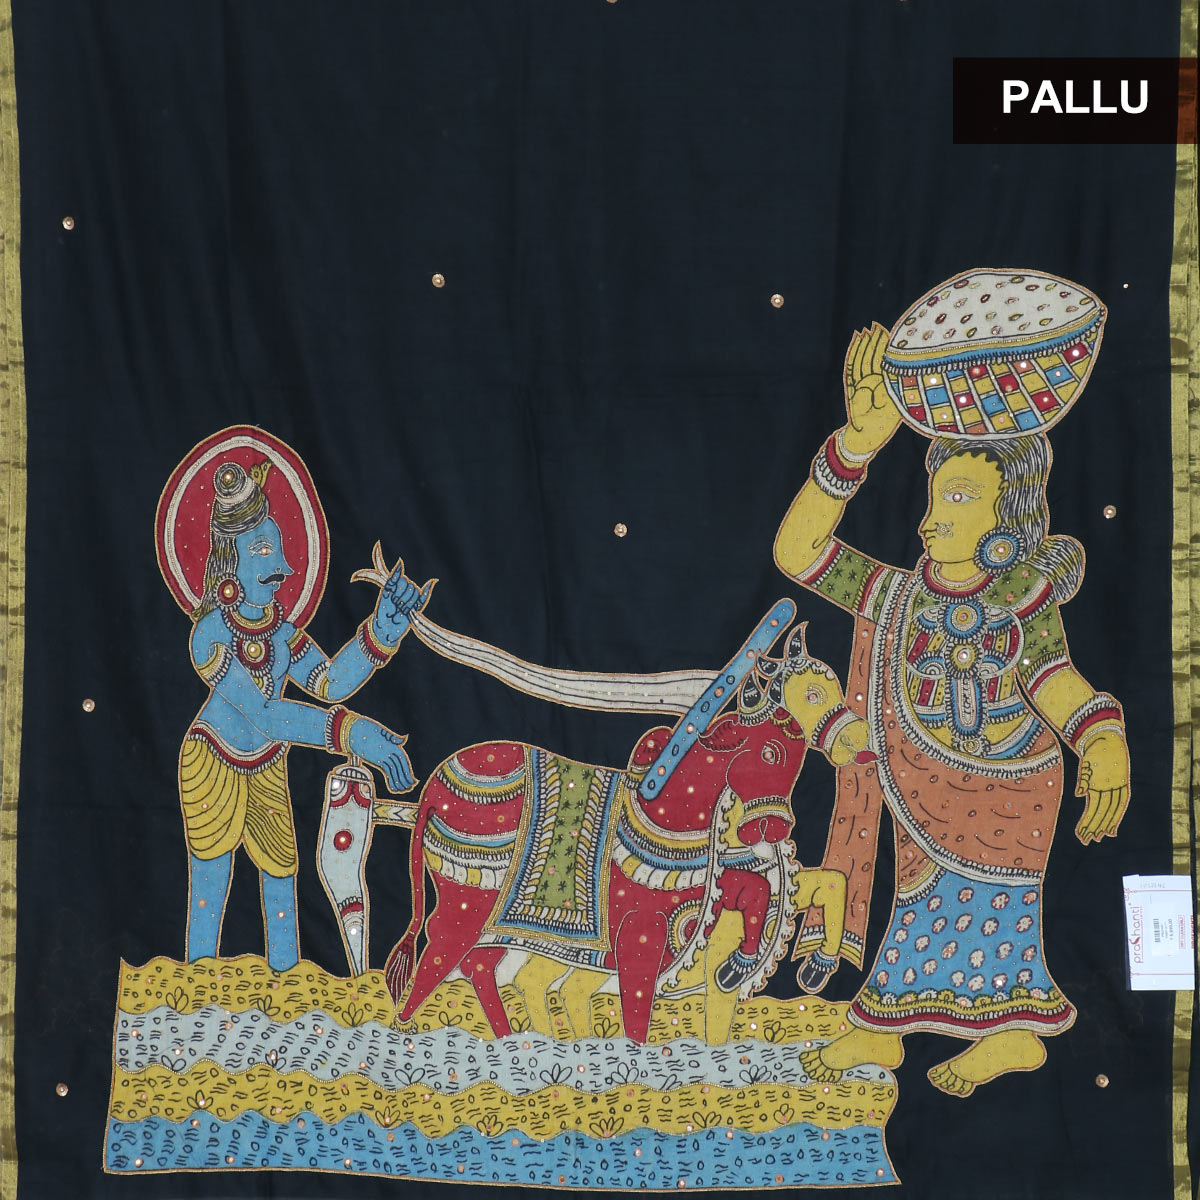 Silk Cotton Saree : Black with kalamkari embroidery work for Rs.Rs. 6990.00 | Silk Cotton Sarees by Prashanti Sarees